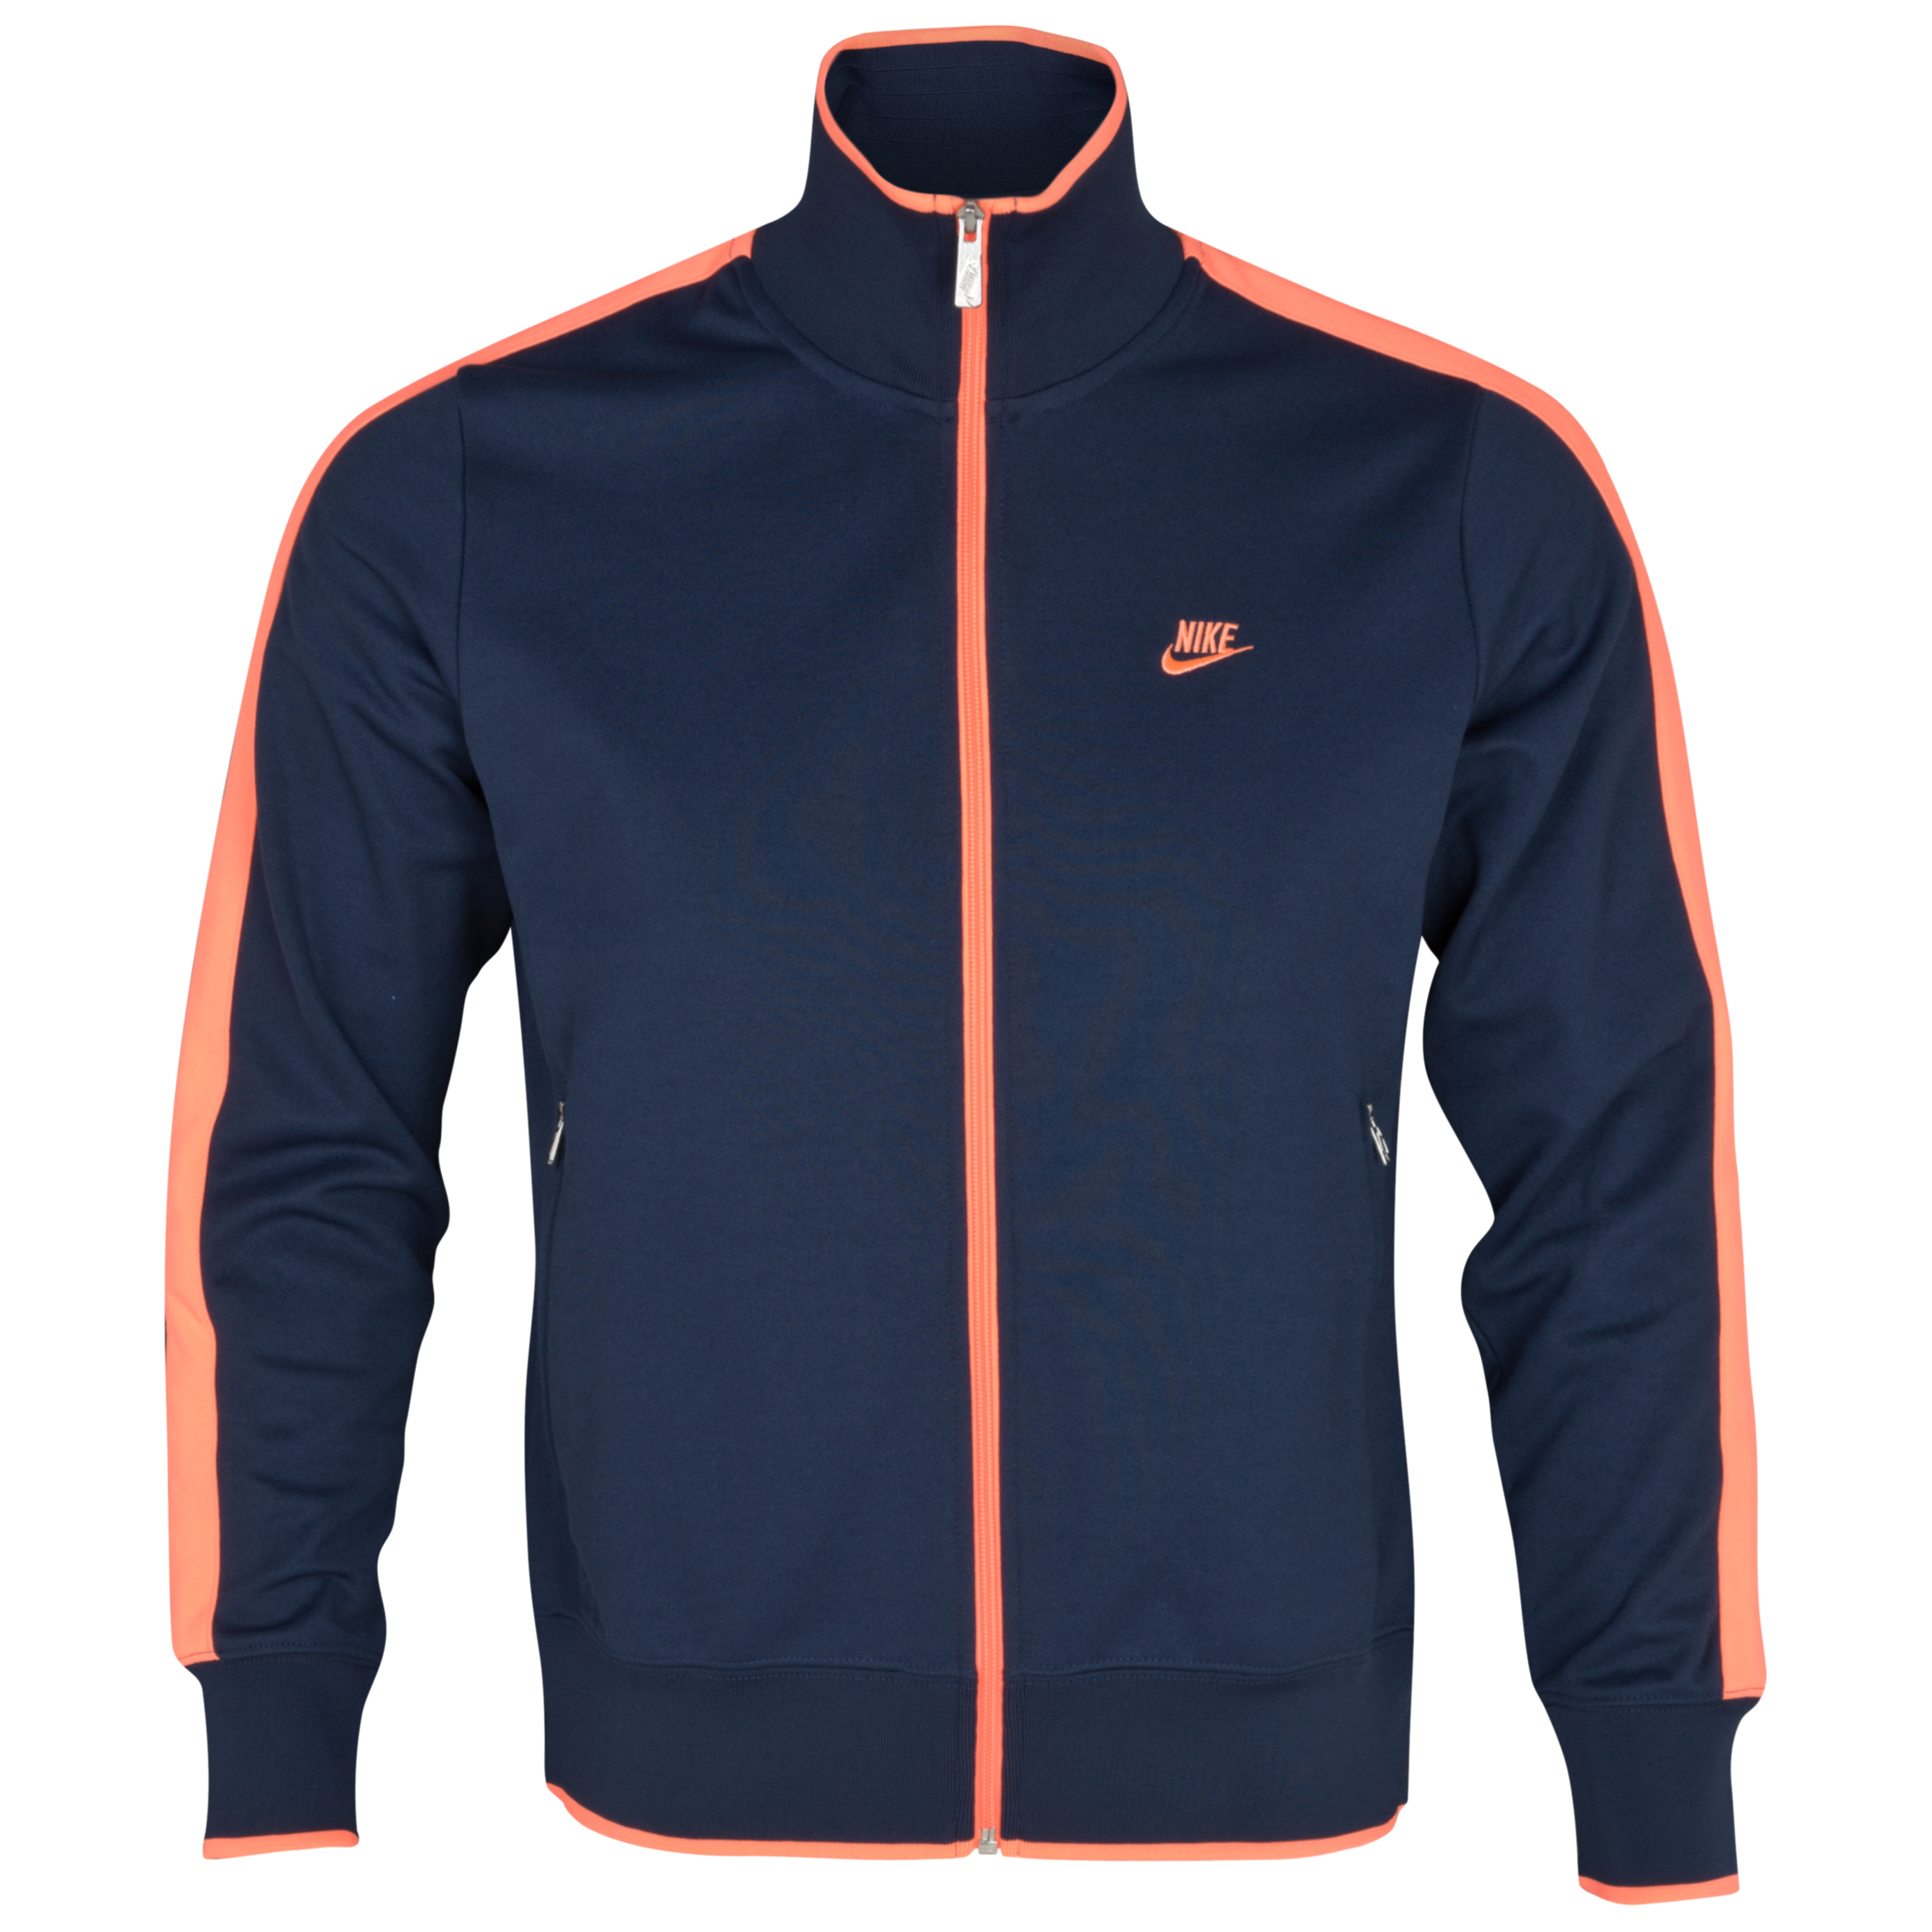 Nike National N98 Jacket - Midnight Navy/Bright Mango